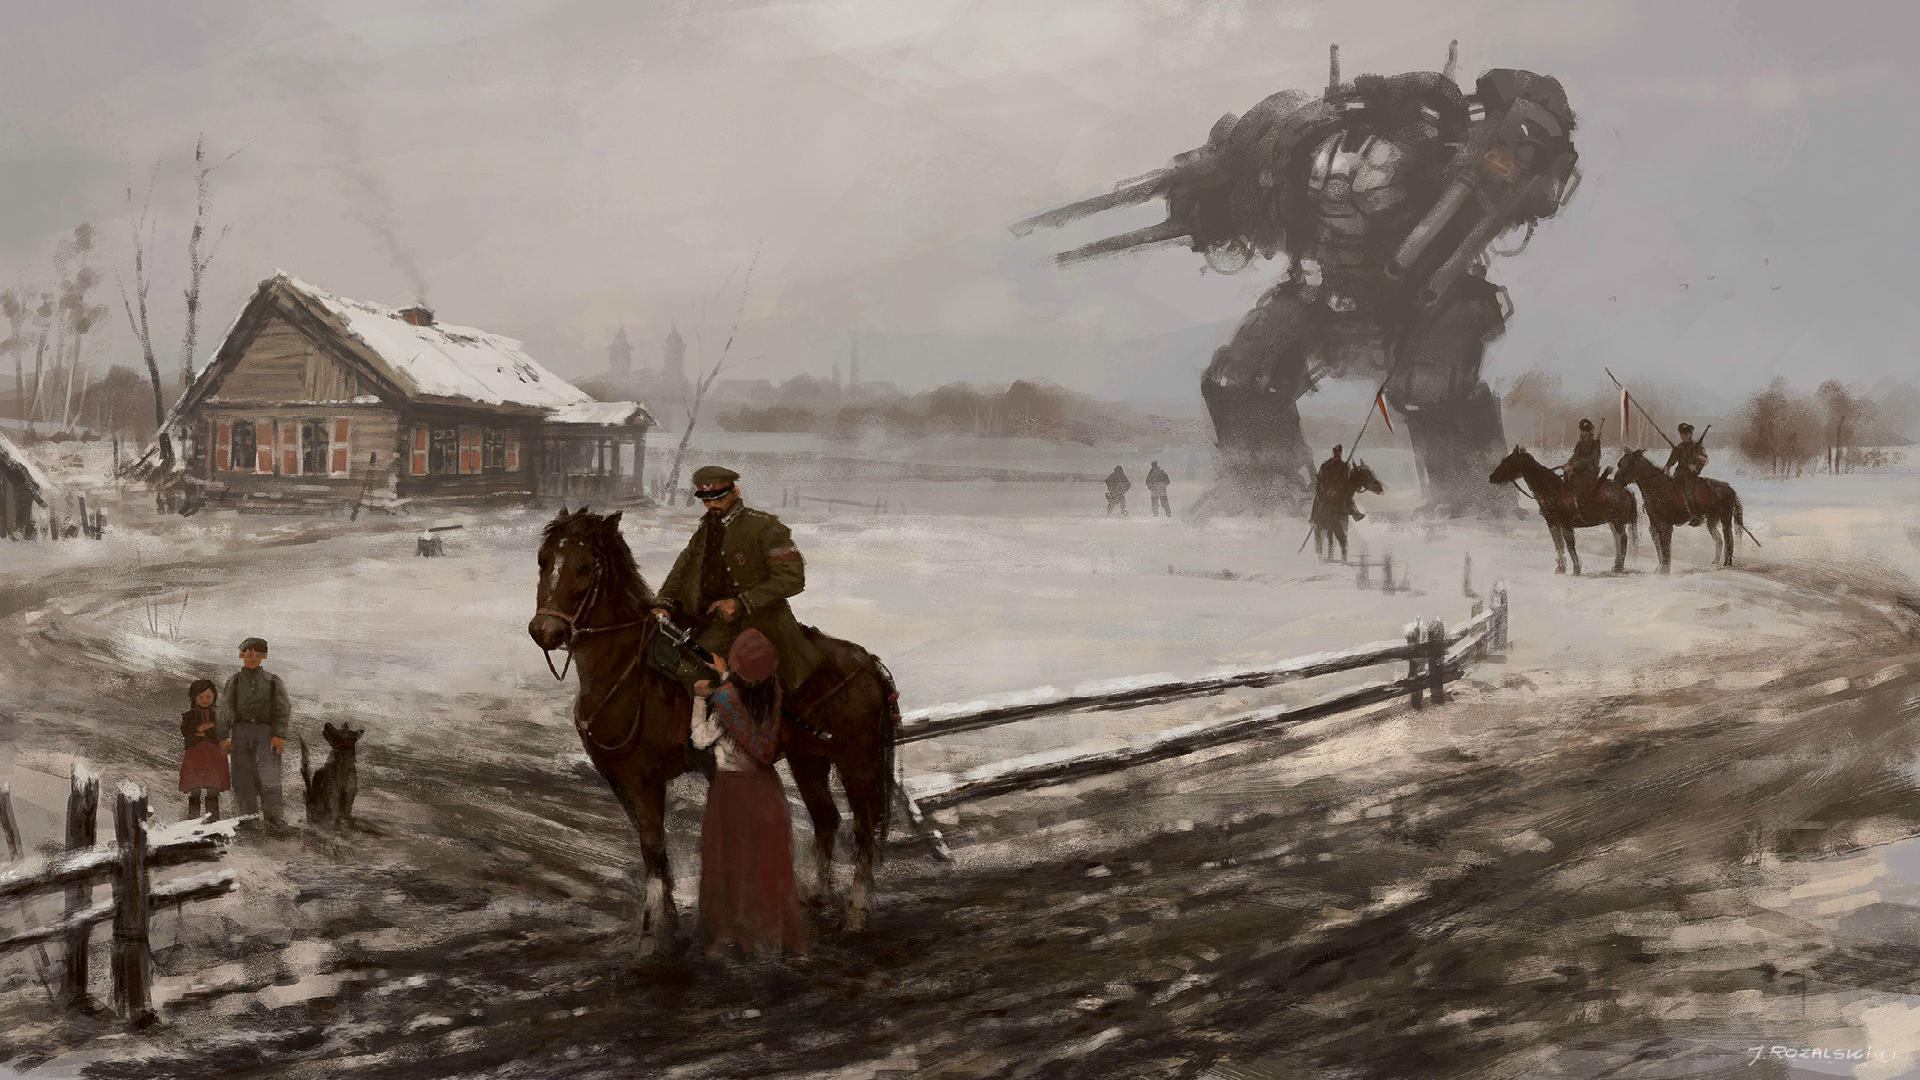 General 1920x1080 digital art army soldier women children horse winter robot painting history house Jakub Różalski Iron Harvest alternative history Poland